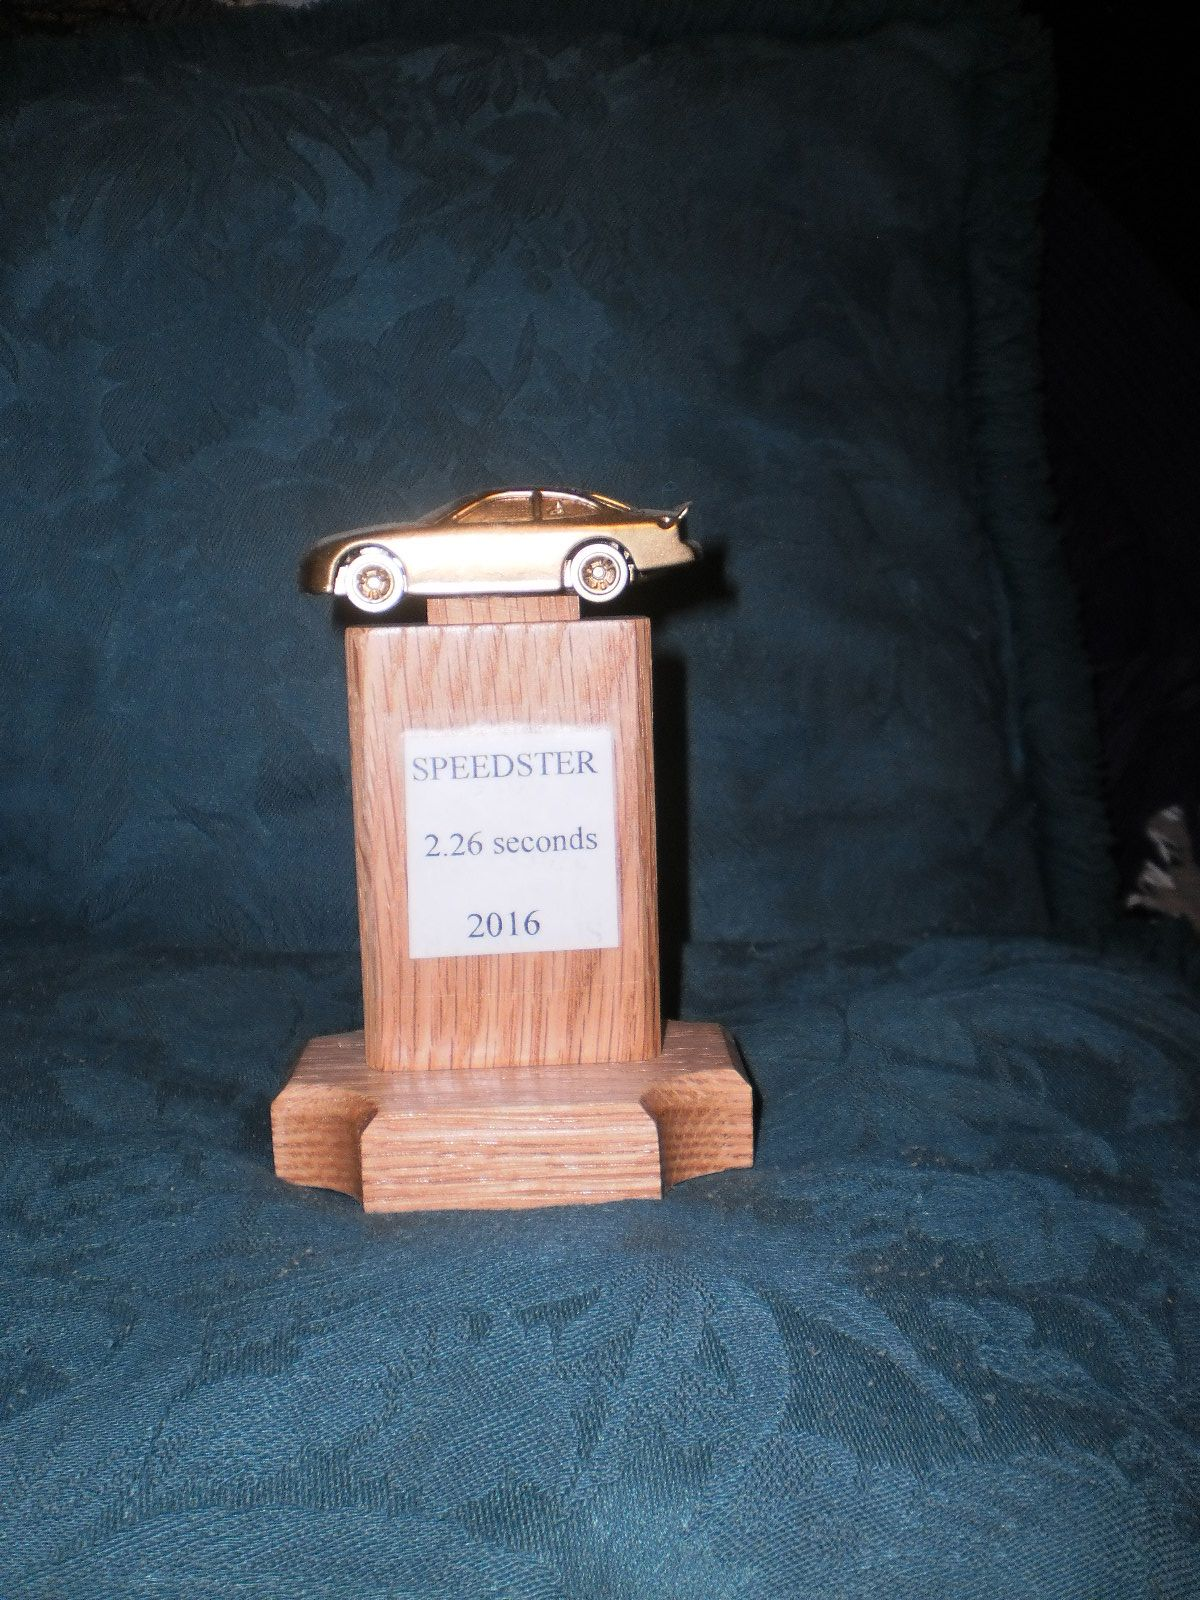 Pinewood Derby trophy made by our Webeloes leader.